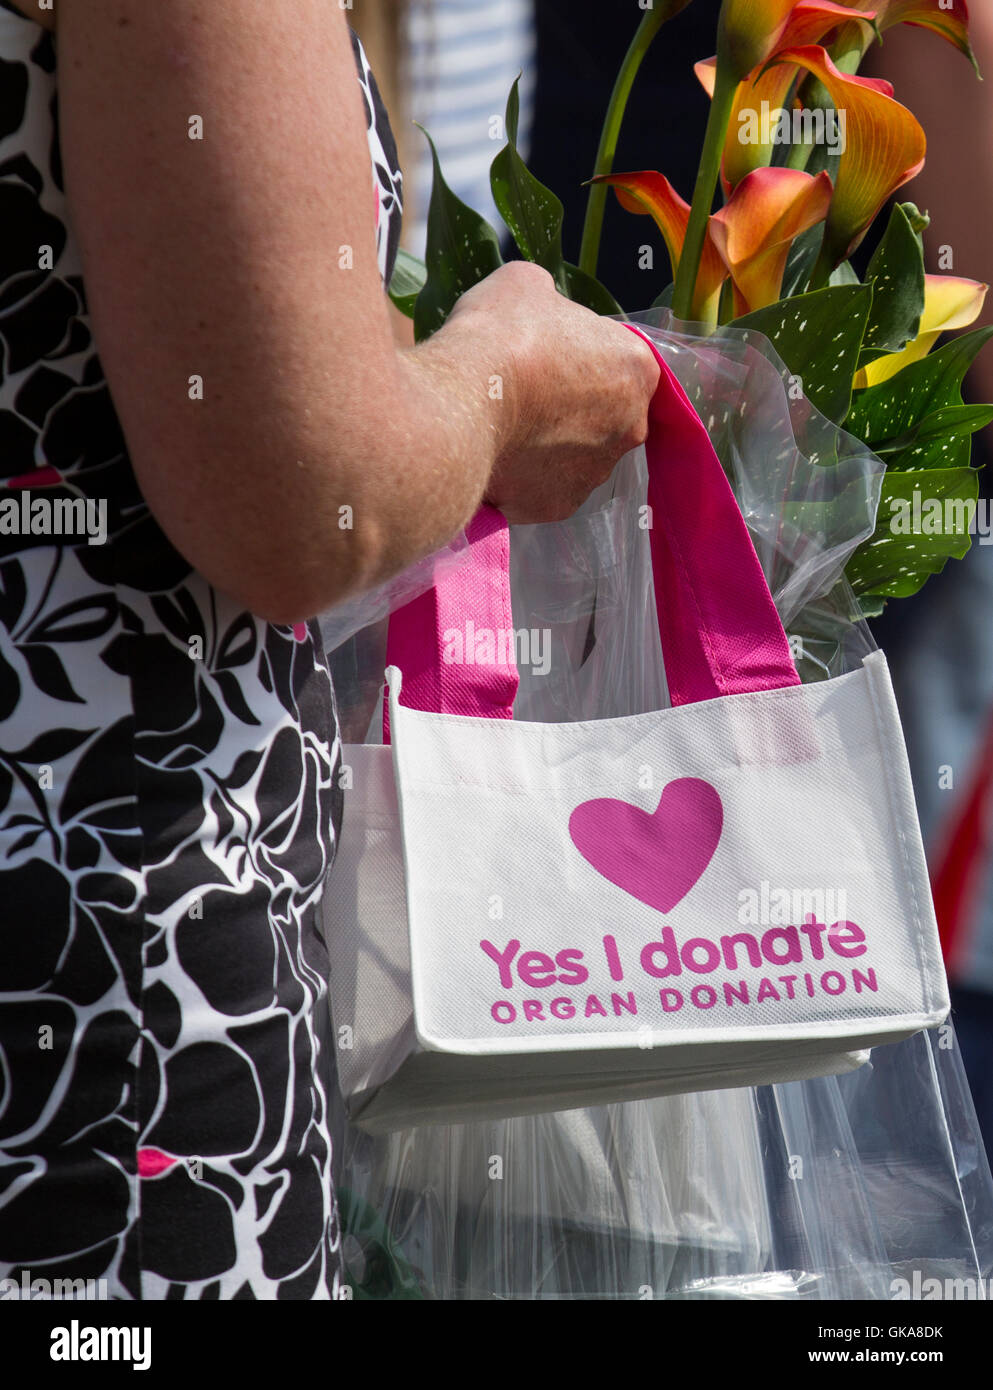 Yes I donate, organ donation bag being carried at Southport Flower Show, Merseyside, UK - Stock Image